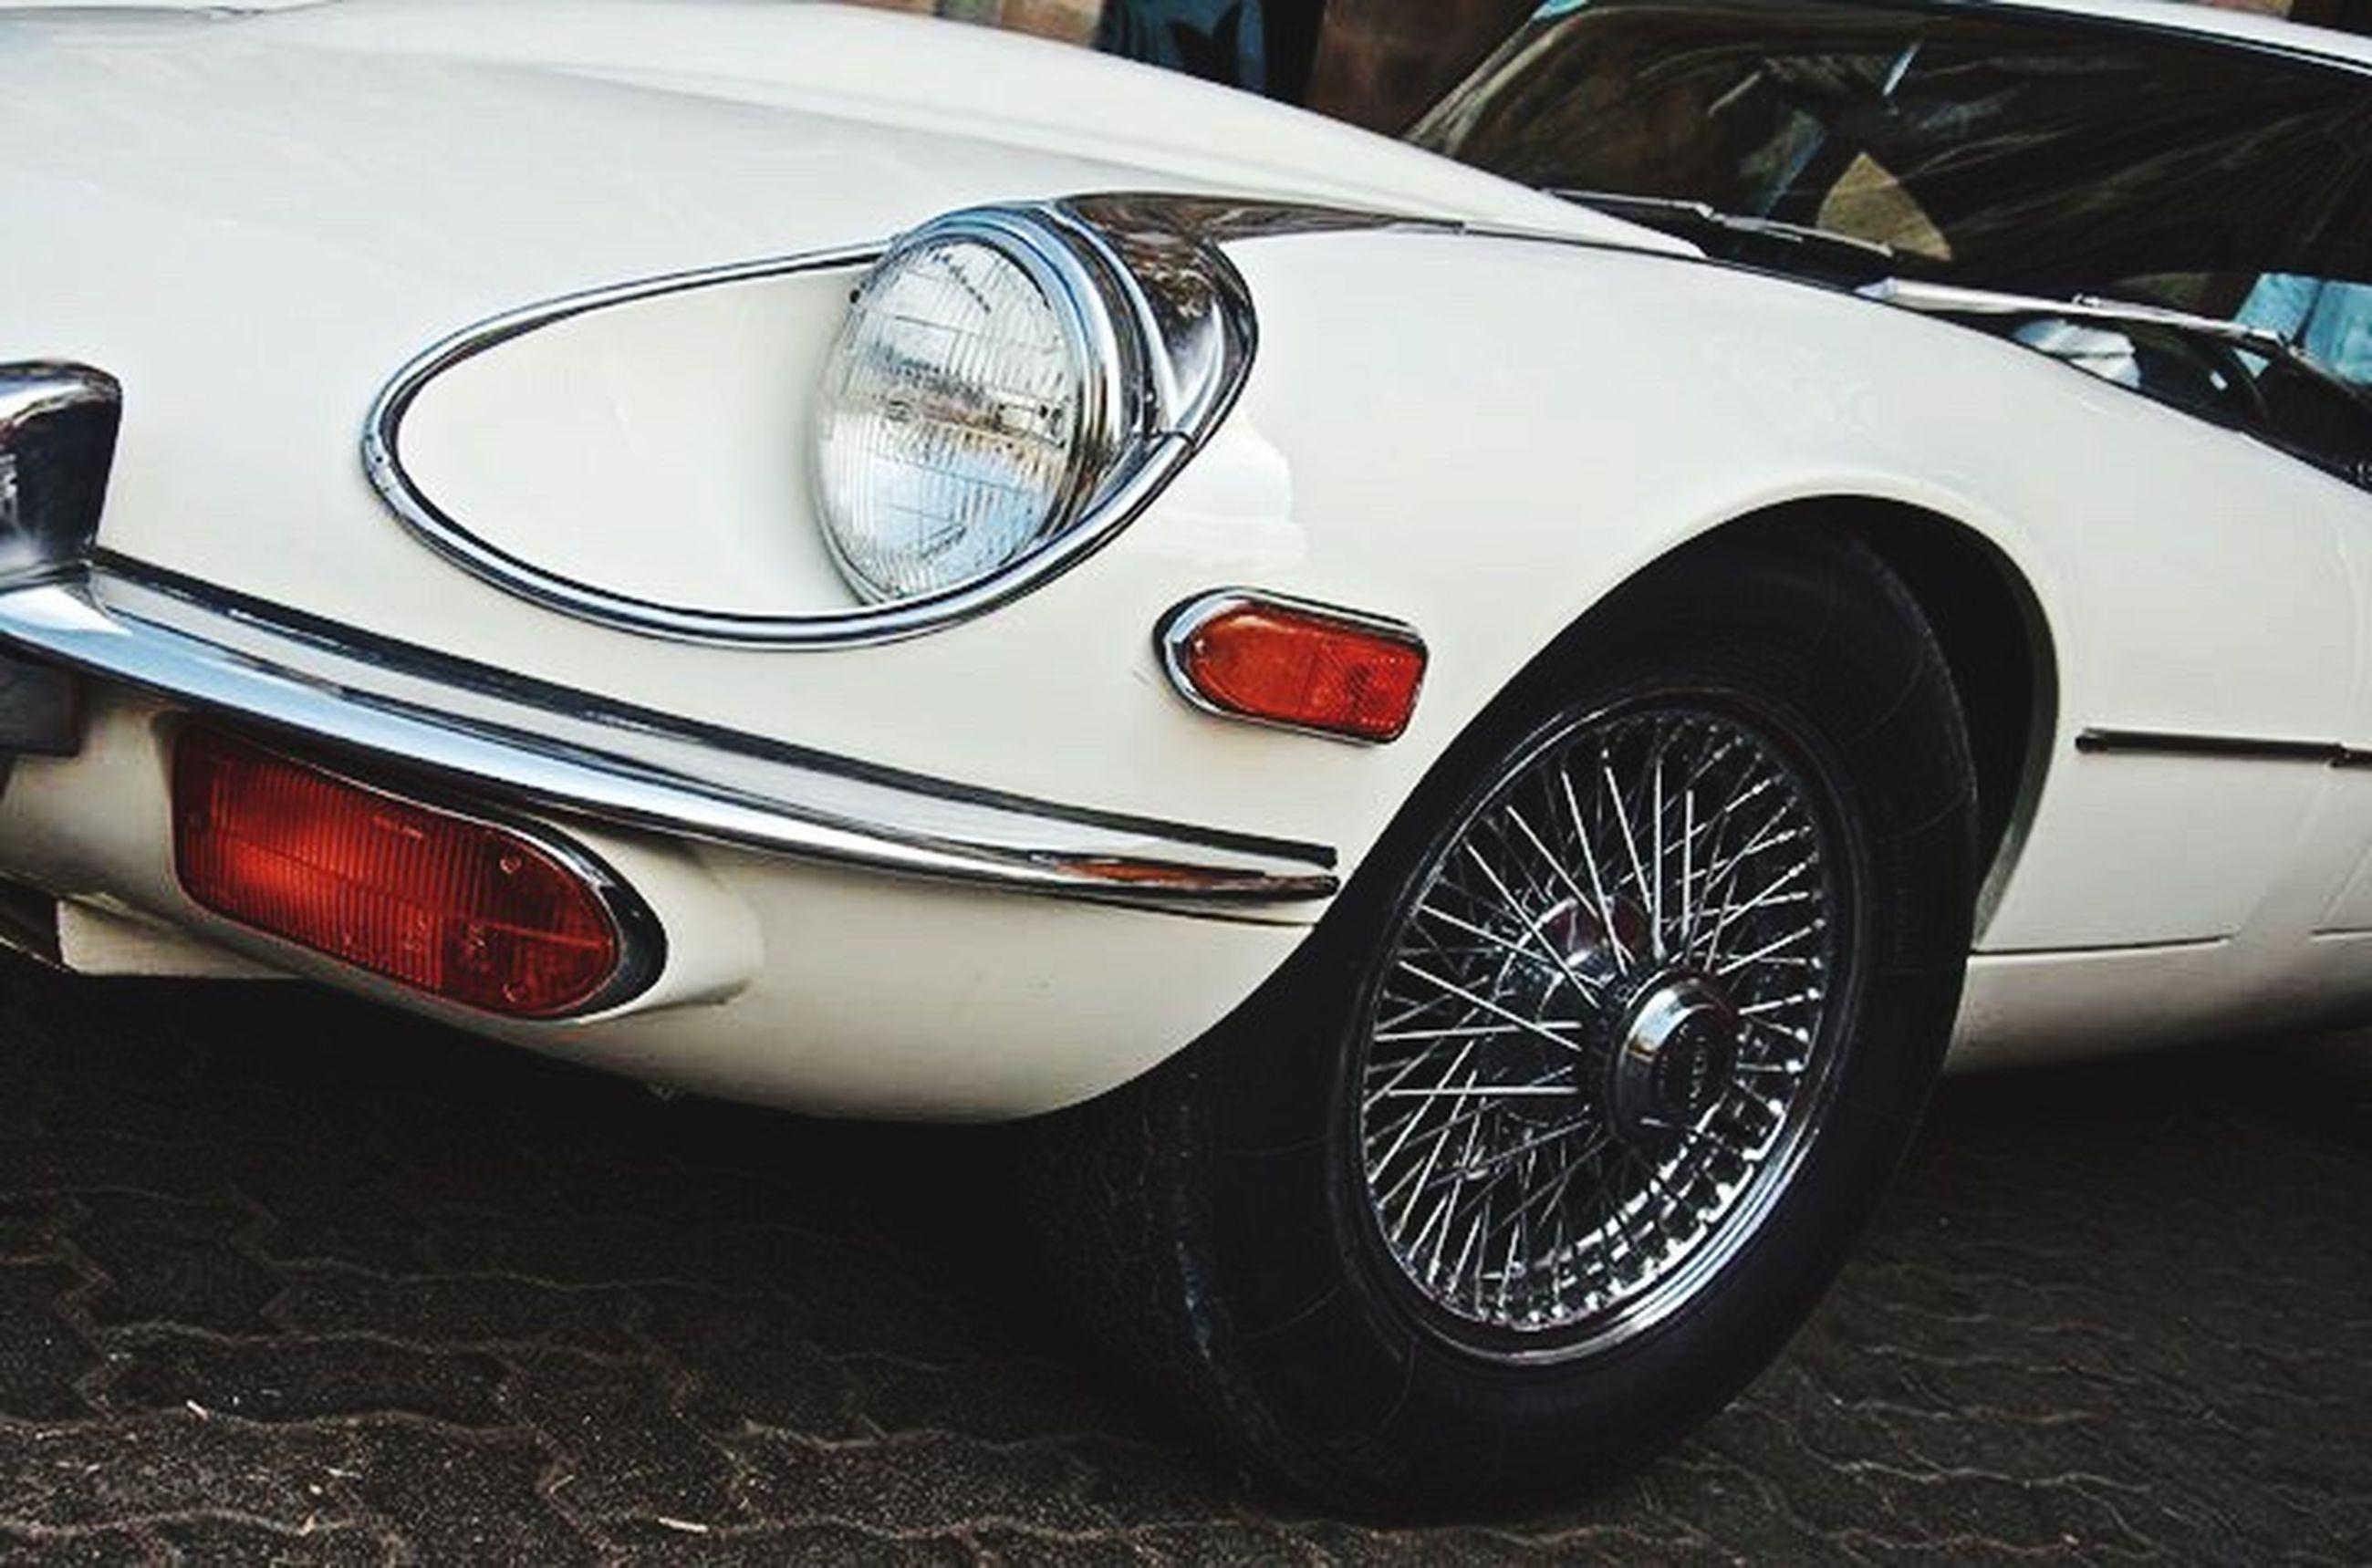 car, mode of transport, headlight, land vehicle, luxury, chrome, transportation, old-fashioned, close-up, collector's car, no people, outdoors, day, motorsport